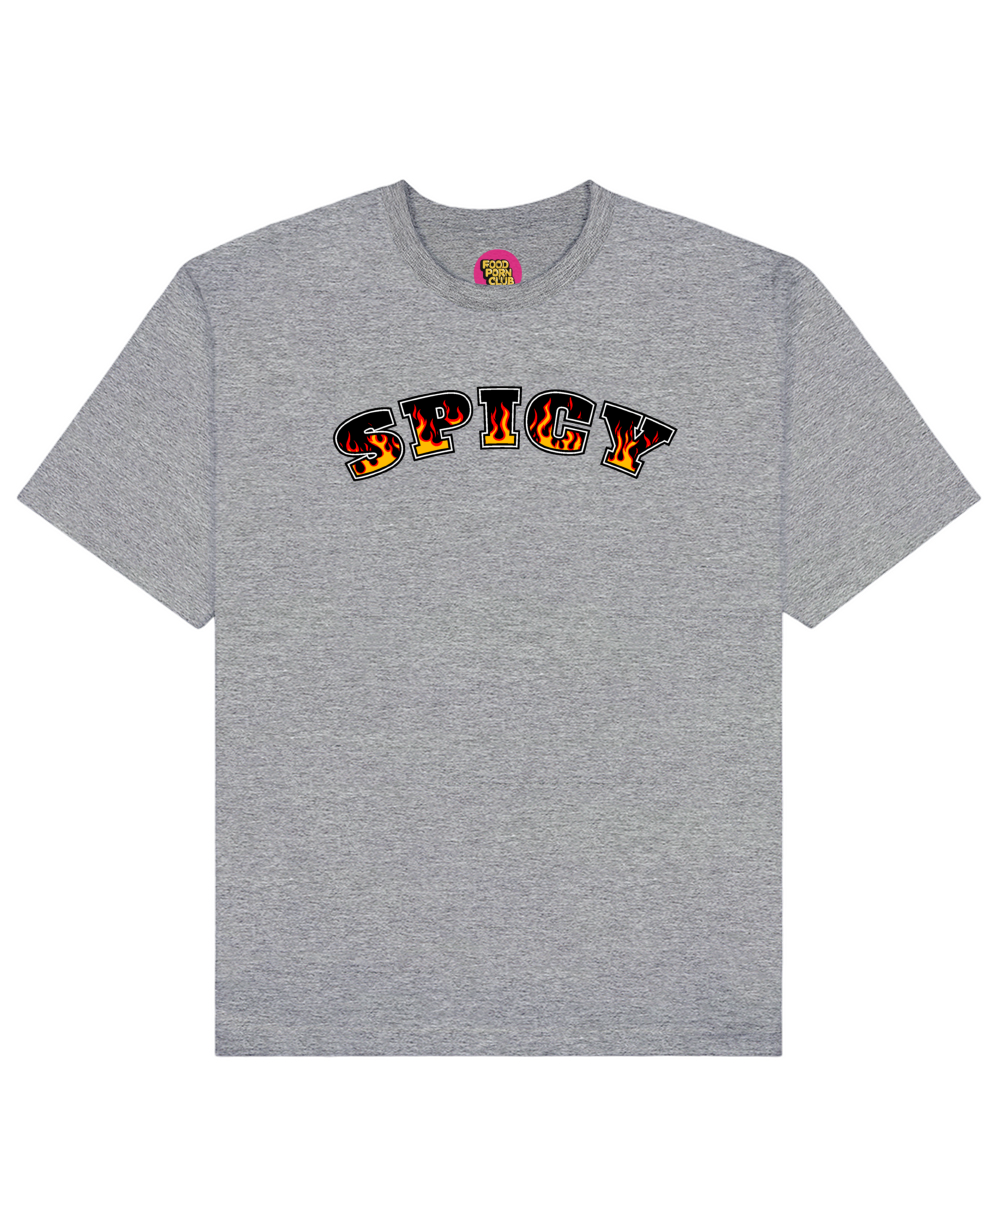 Spicy Print T-Shirt in Gray - T-Shirts - FOOD PORN CLUB - BRANMA